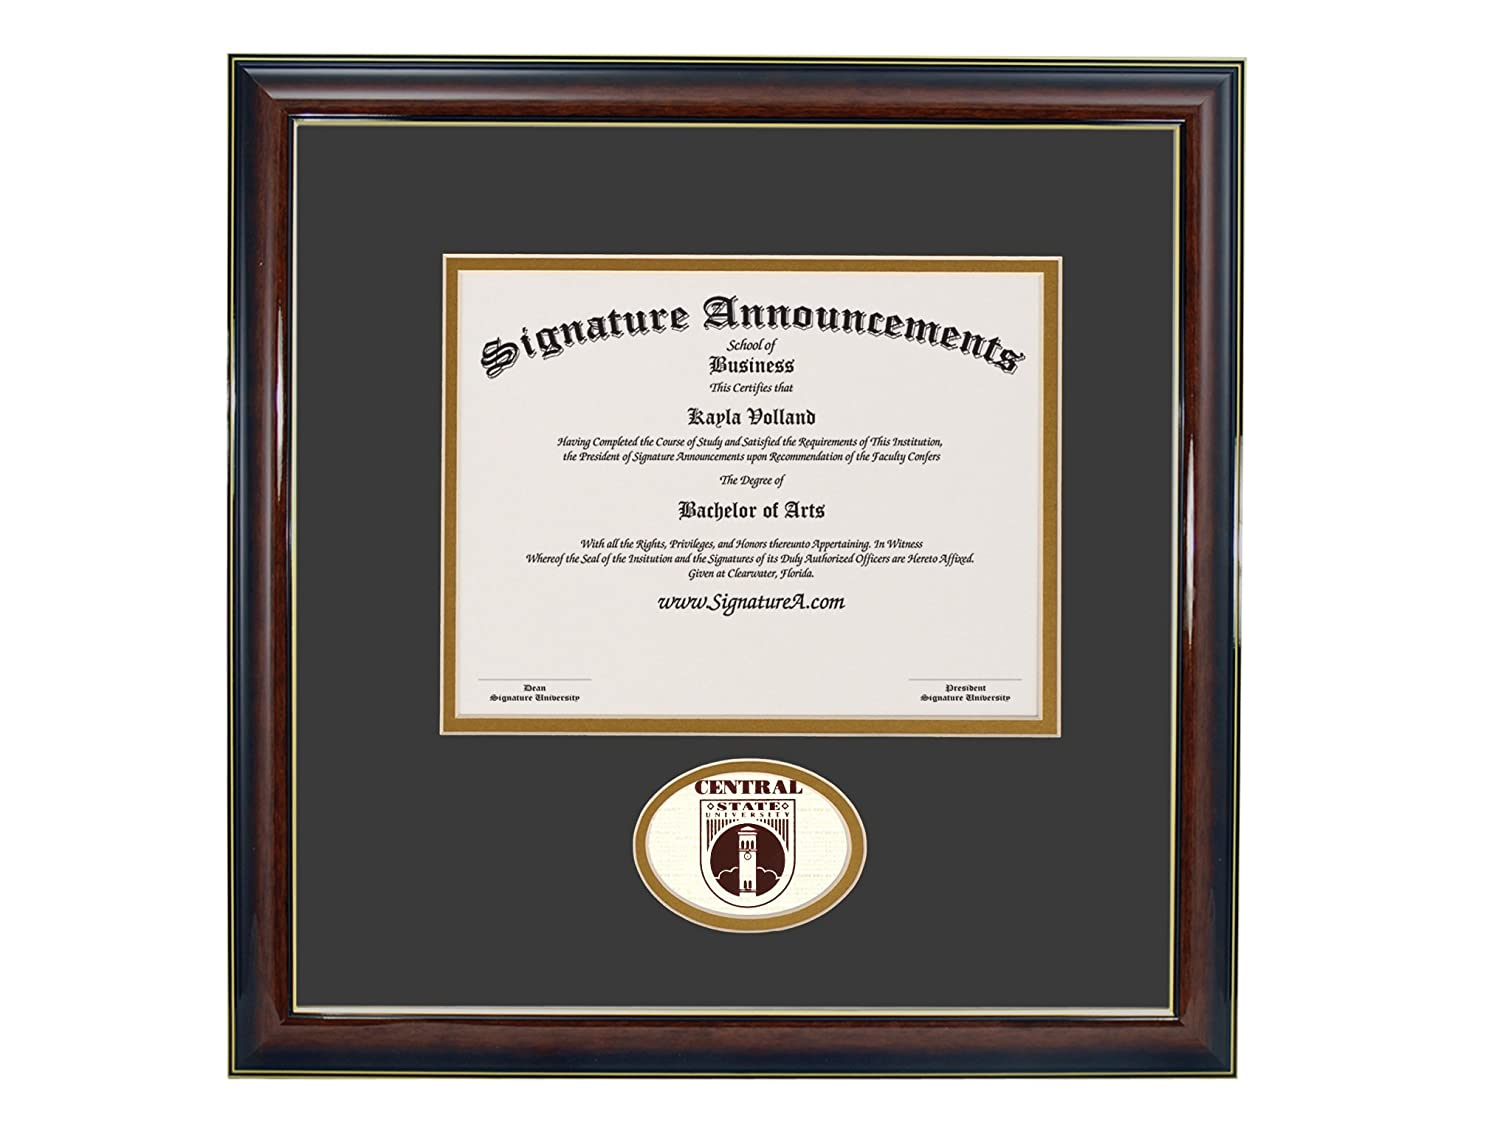 Signature Announcements Central-State-University Sculpted Foil Seal Graduation Diploma Frame 16 x 16 Gold Accent Gloss Mahogany